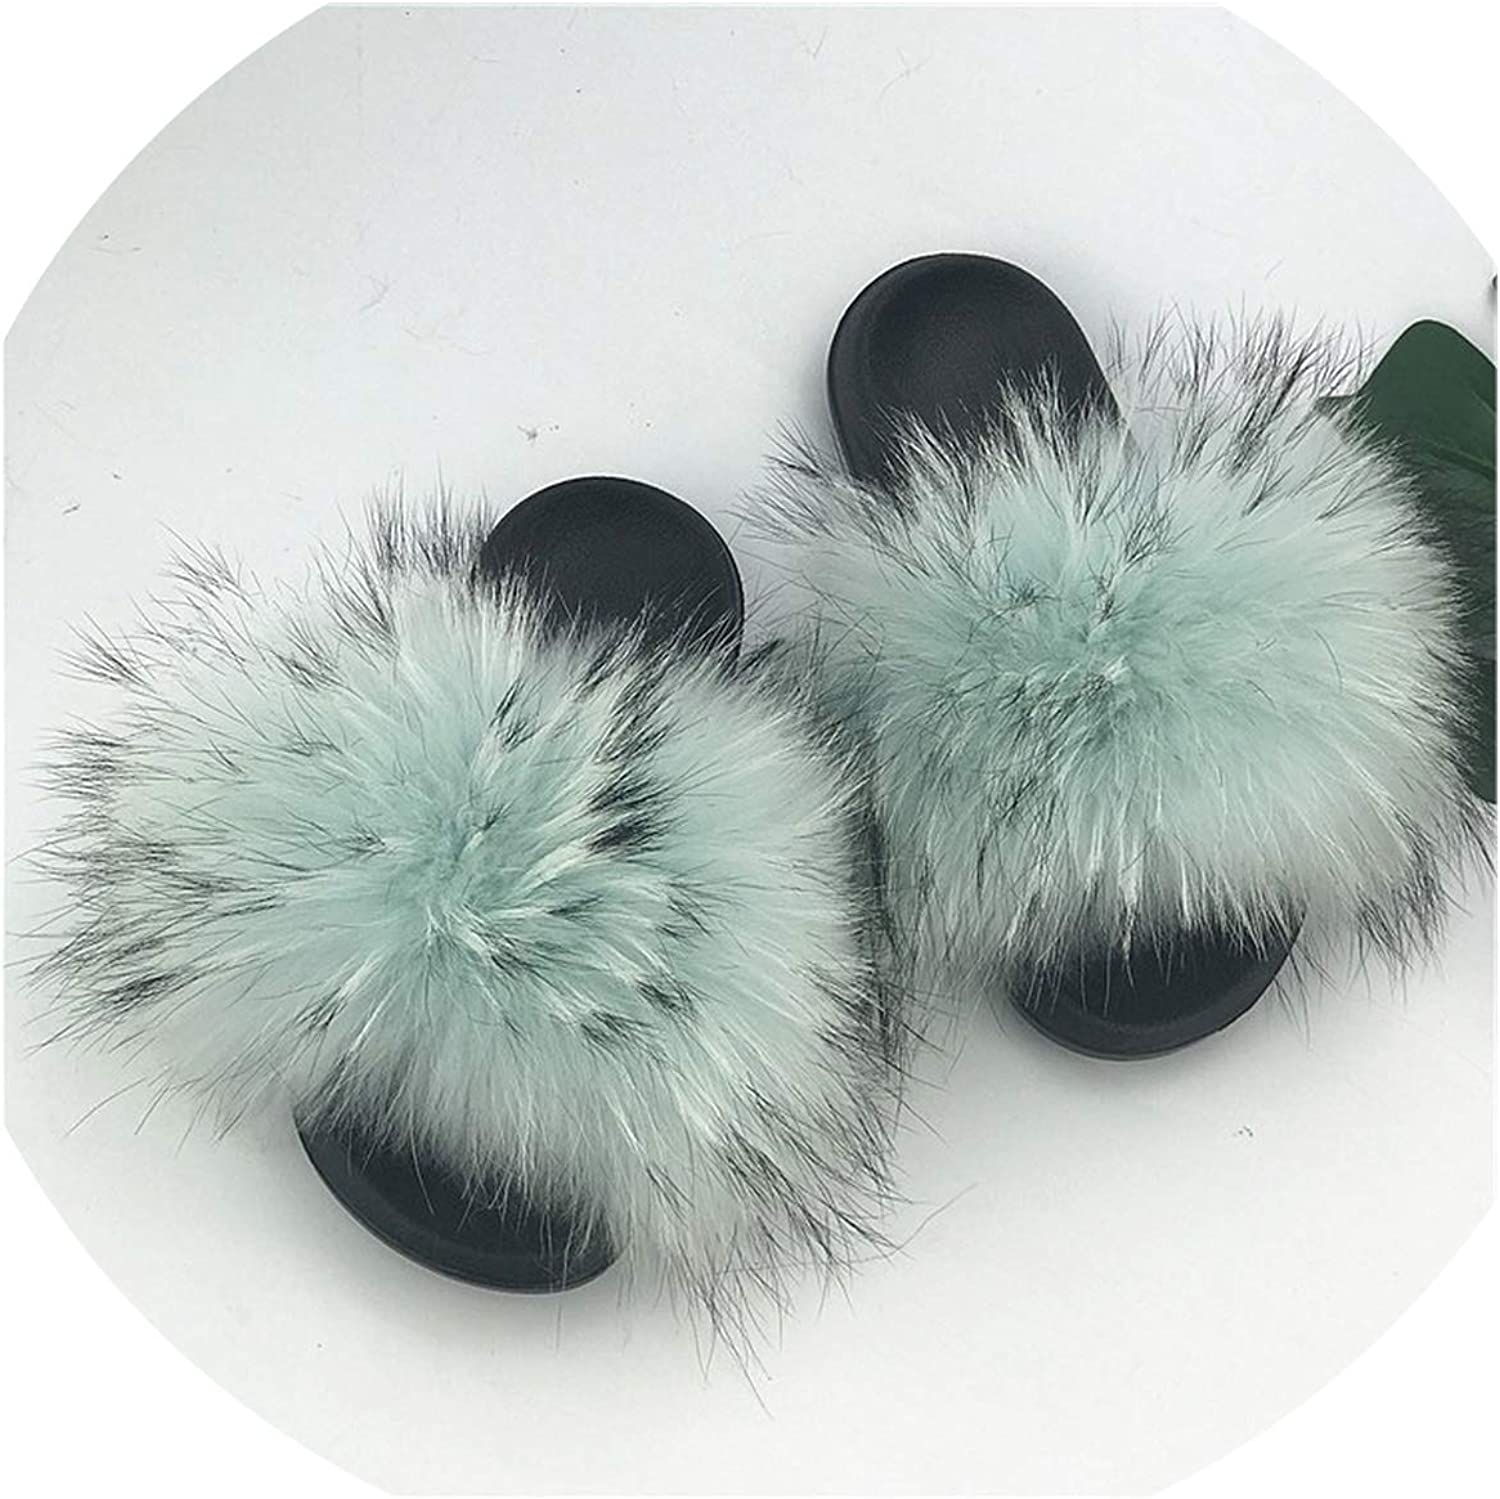 Just XiaoZhouZhou 28 colors Real Fur Slippers Women Fox Fluffy Sliders Comfort with Feathers Furry Summer Flats Sweet Ladies shoes Plus Size 36-45,24,91